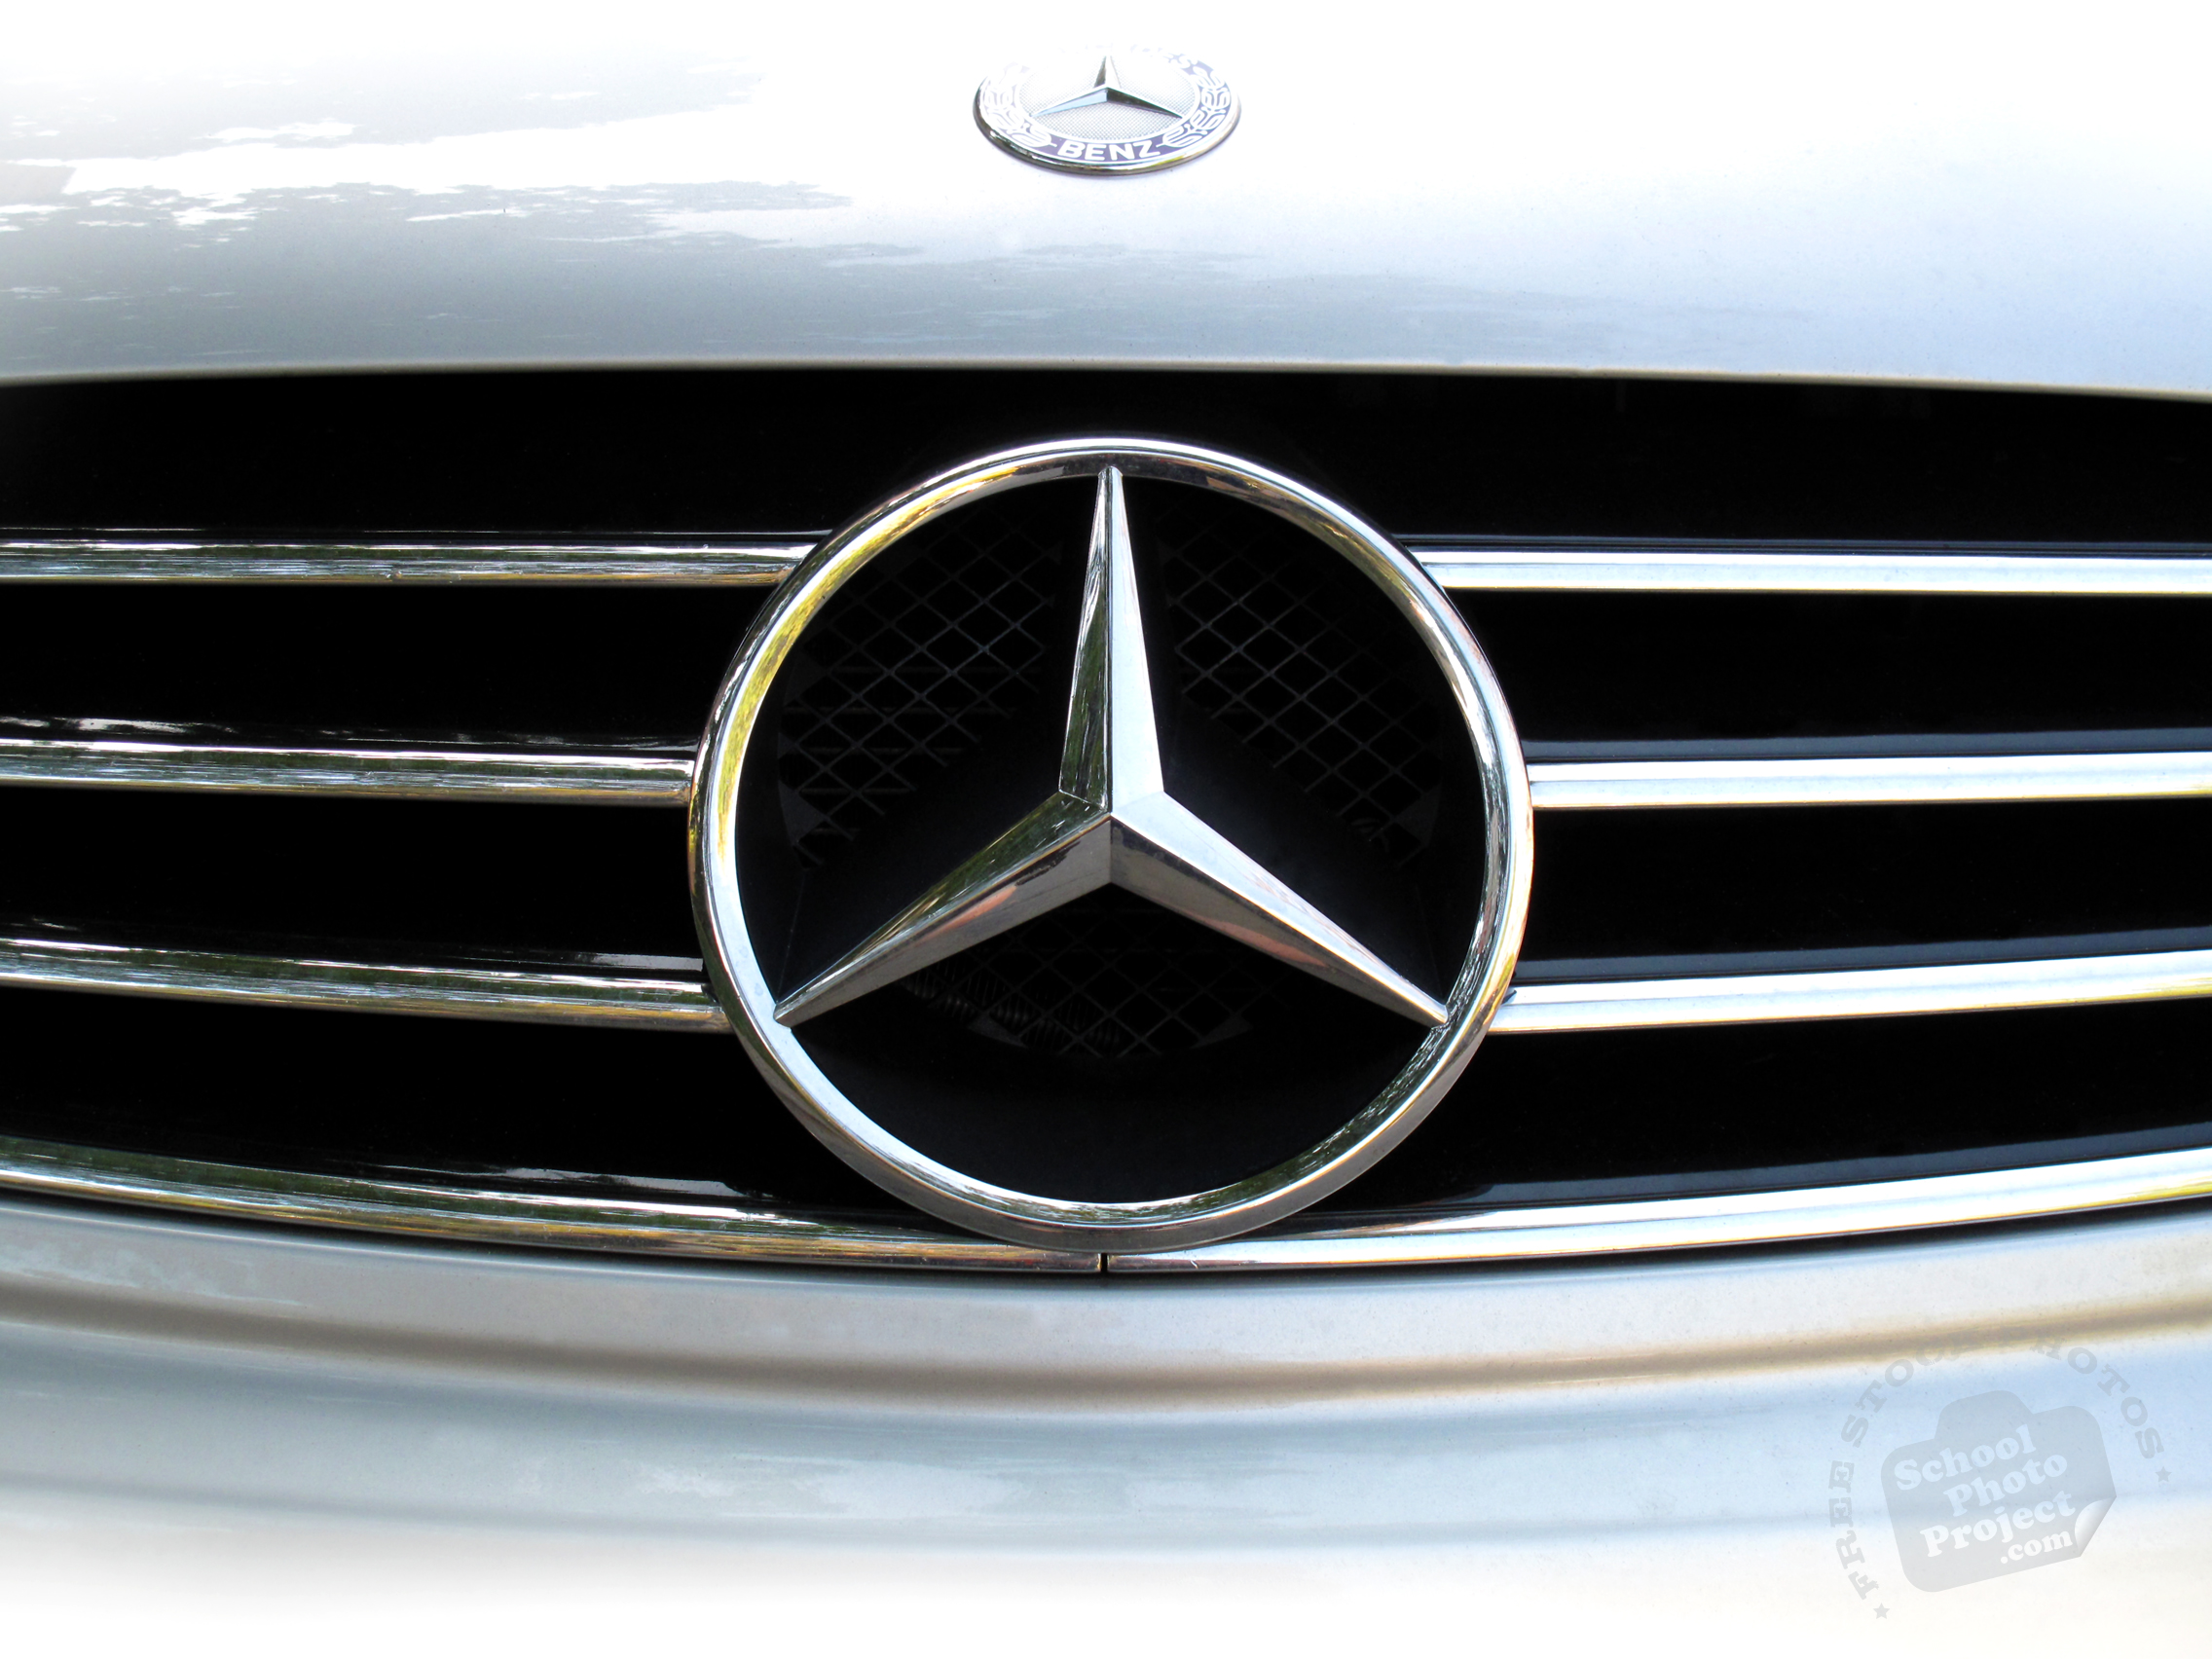 Mercedes benz logo free stock photo image picture mercedes mercedes benz logo mercedes benz brand car logo auto automobile voltagebd